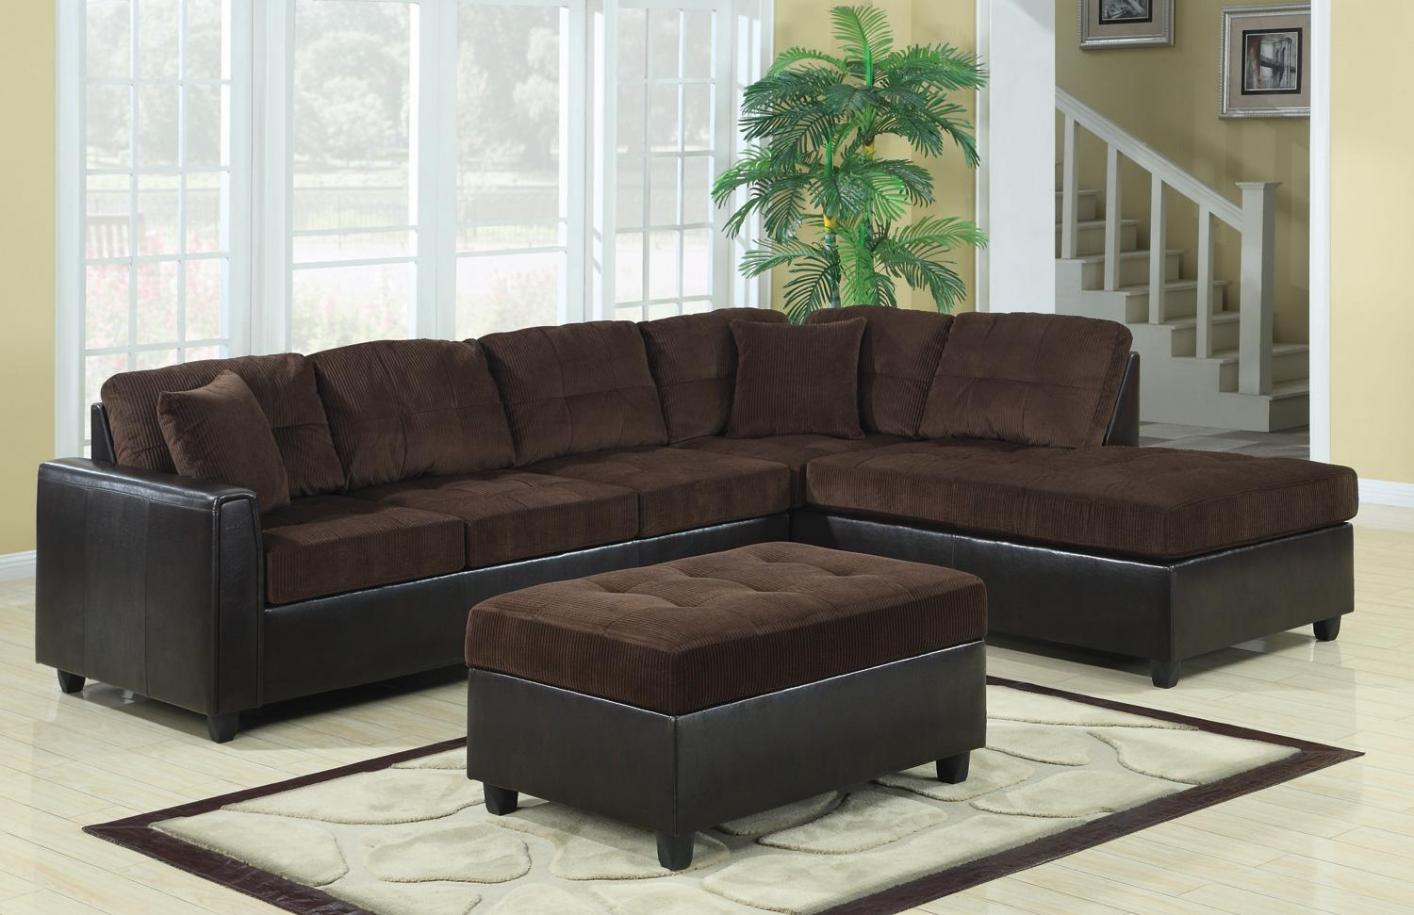 Brown fabric sectional sofa steal a sofa furniture for Brown fabric couch